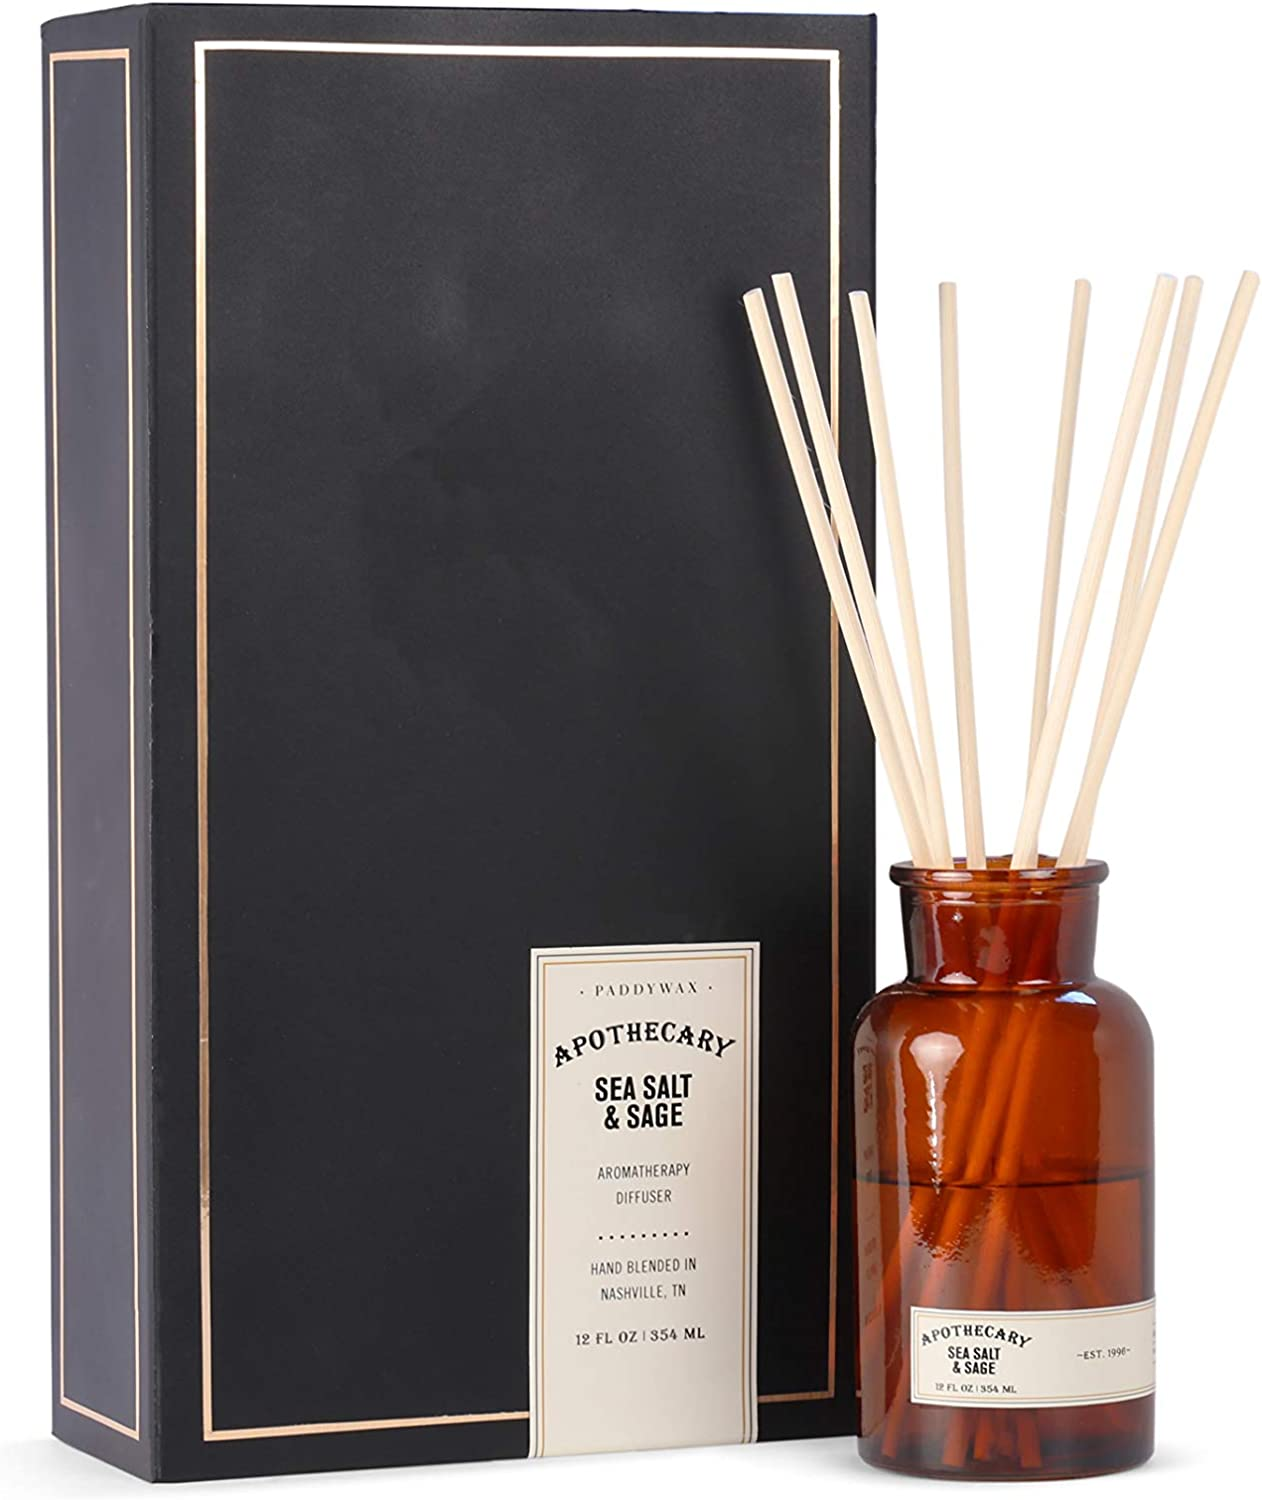 Paddywax Candles Apothecary Collection Reed Diffuser Set, Sea Salt & Sage